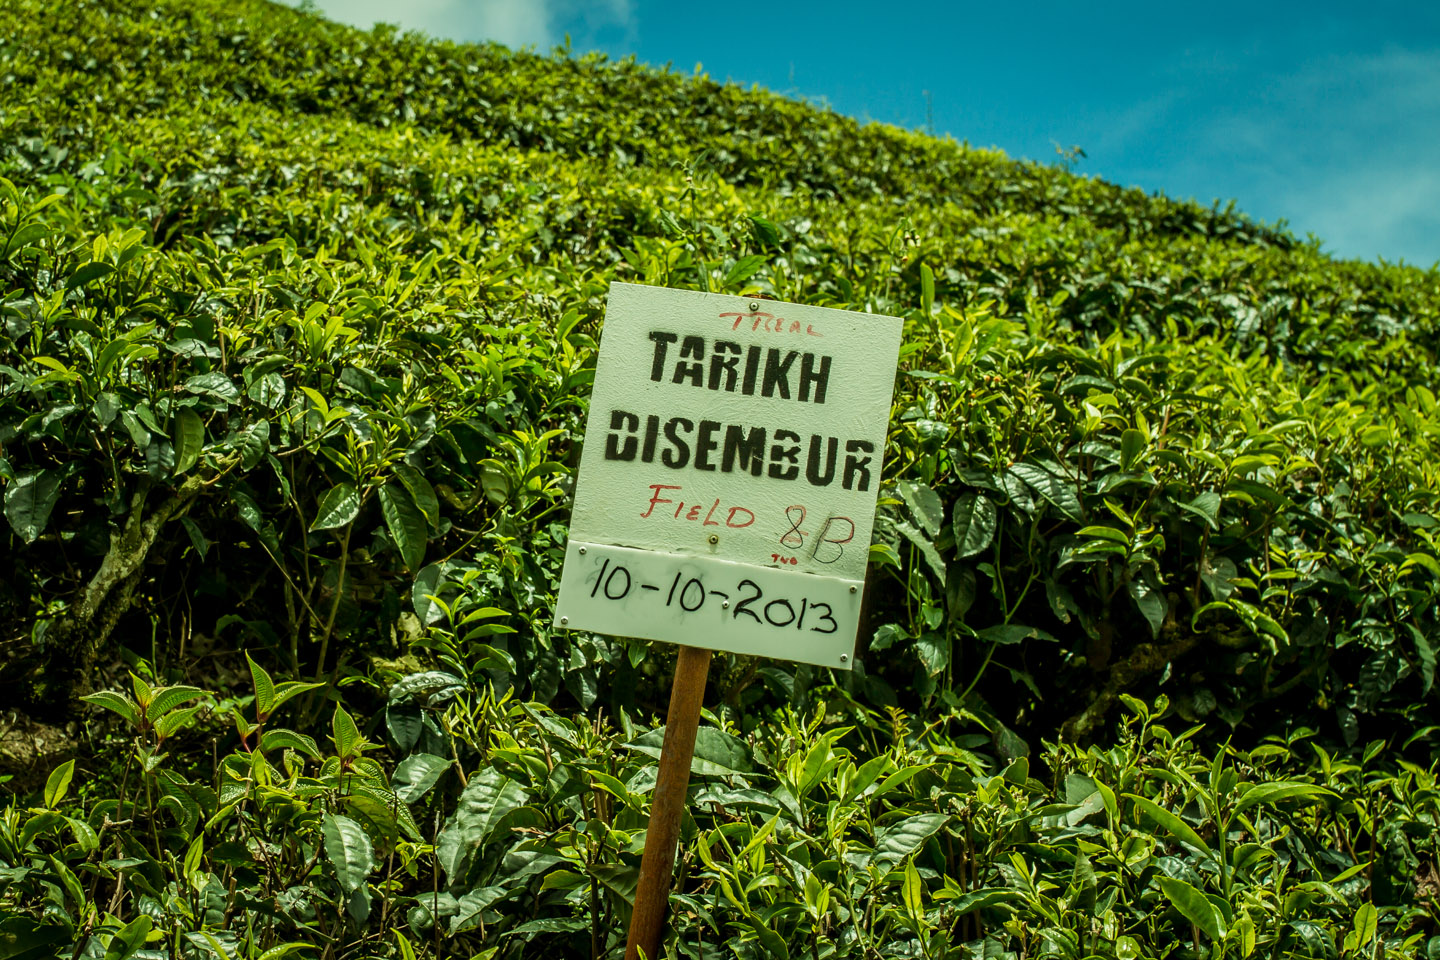 Tea production and fermentation at Cameron Highlands Malaysia